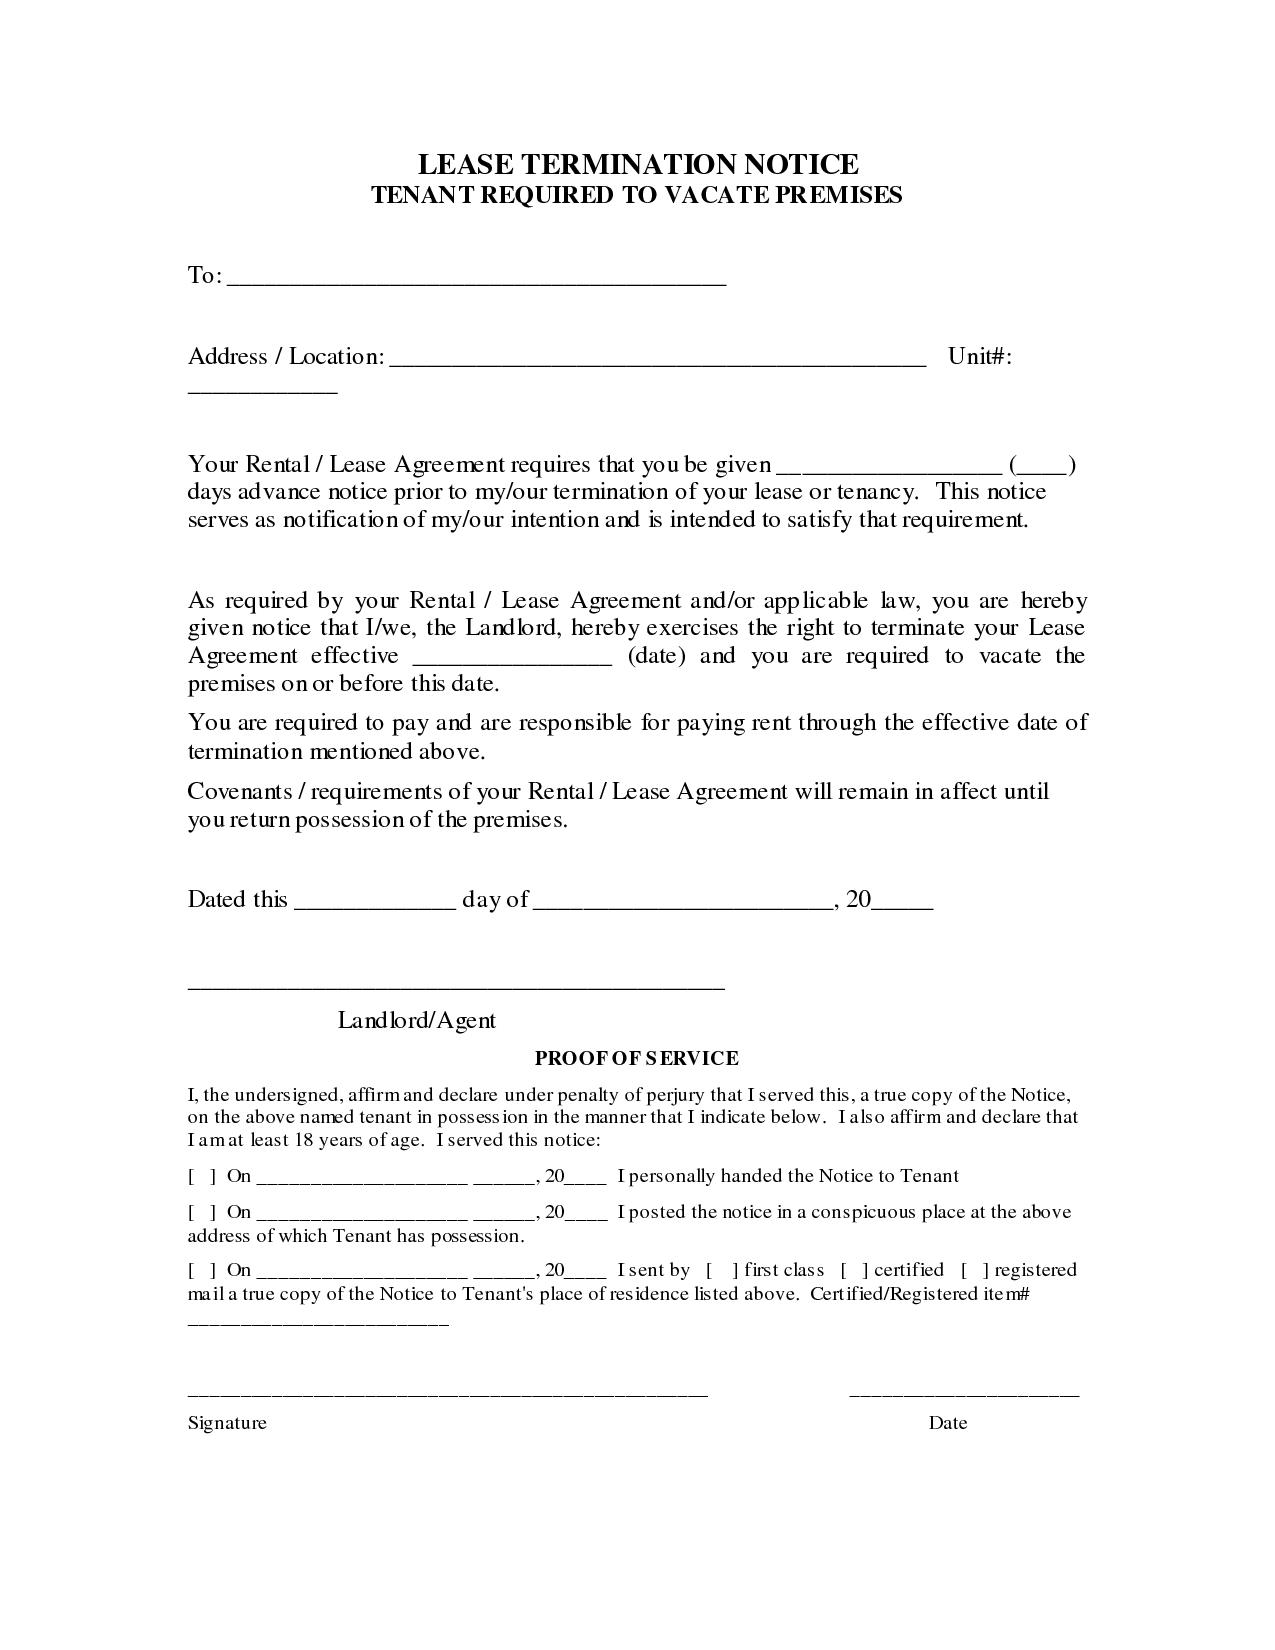 tenant termination lease agreement rental landlord letter letters